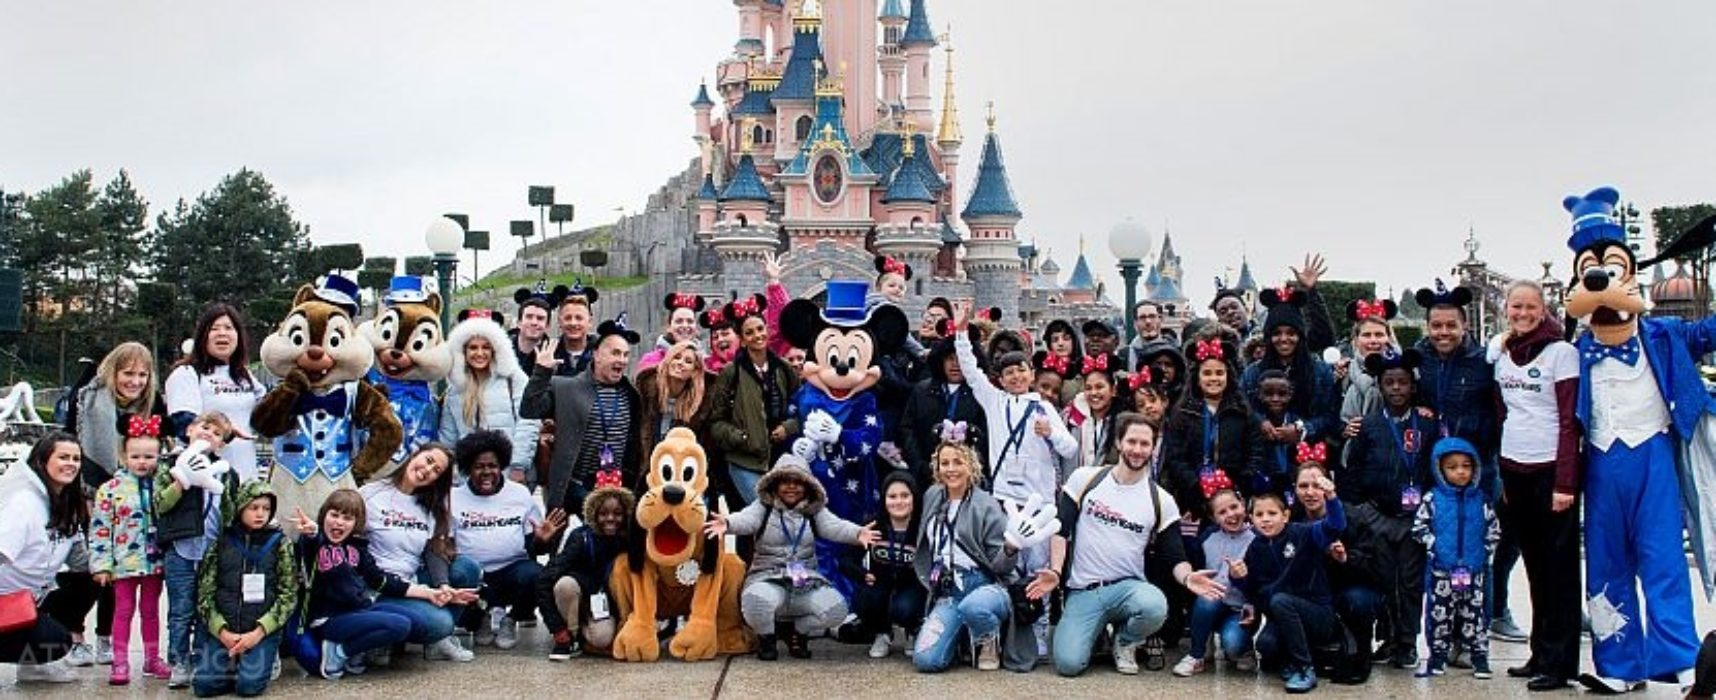 Disneyland Paris welcomes youngsters and their famous friends